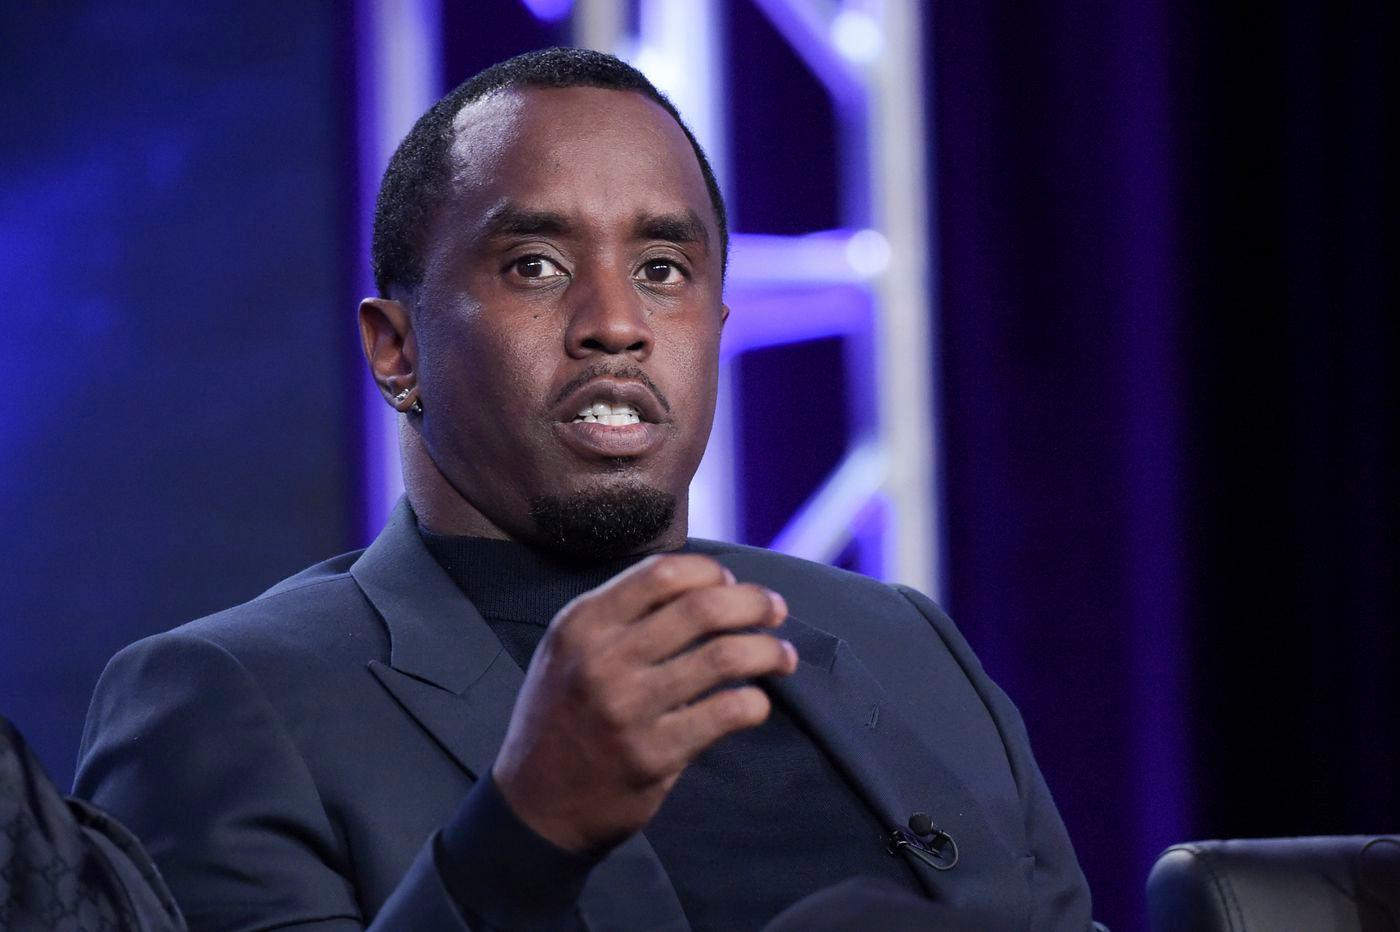 Diddy Shows His Gratitude To The Health Care Workers Amidst The Coronavirus Pandemic